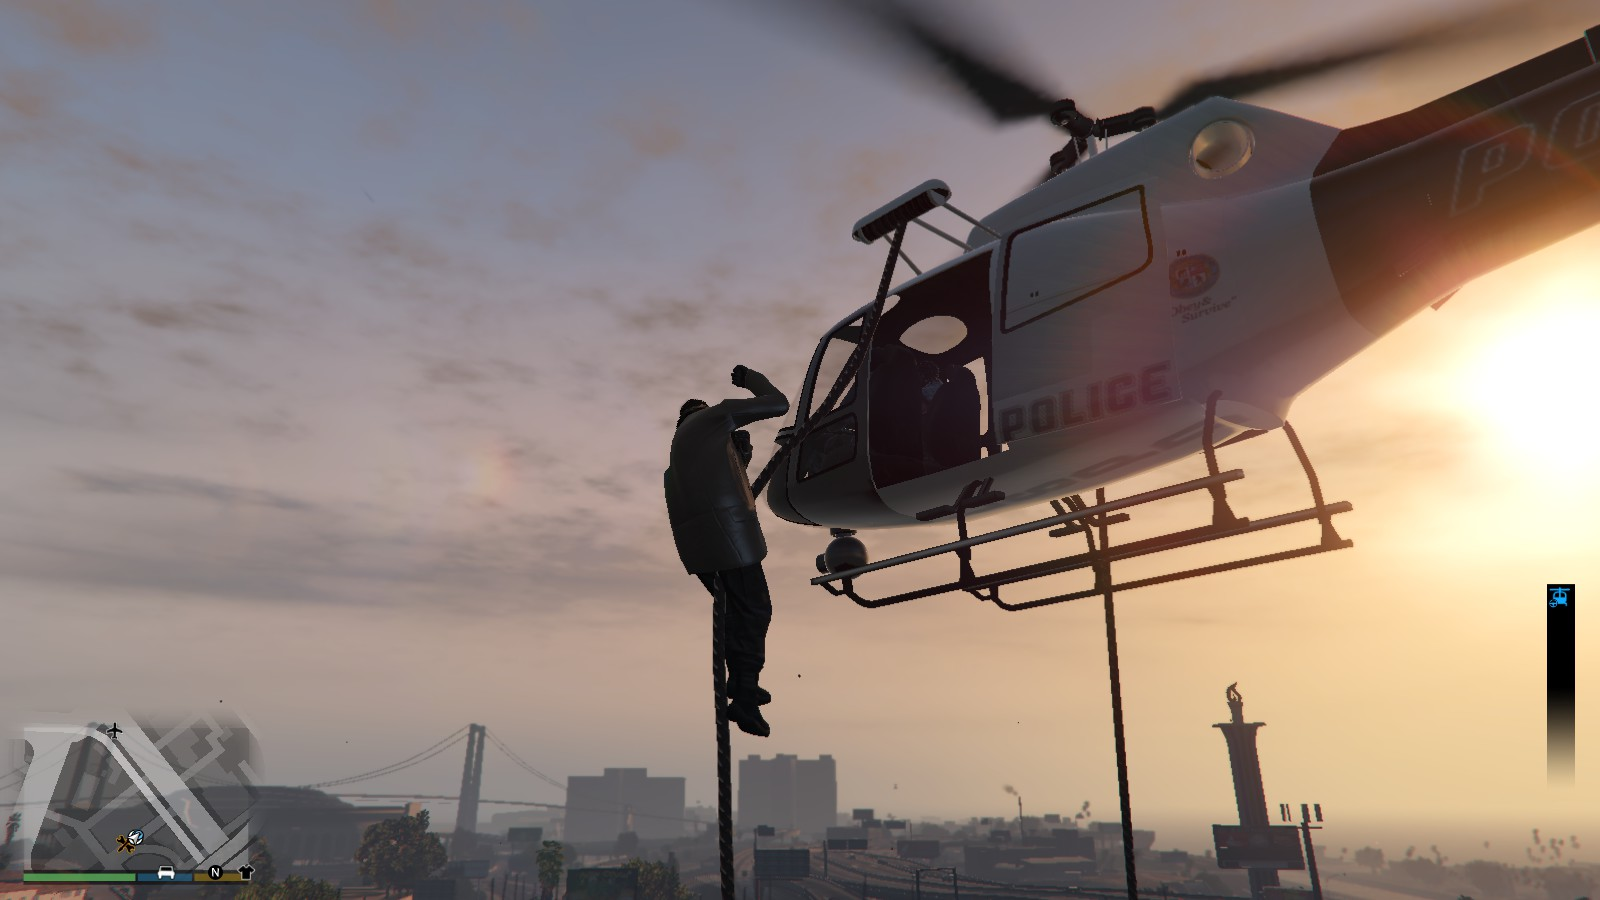 where can i spawn a helicopter in gta 5 with  on Watch likewise Gta 5 Cheats All Of The Cheats On Xbox 360 besides Gta Online Hints Tips further Gta Online Hints And Tips as well Farnsworth S Assassinaton Contracts.